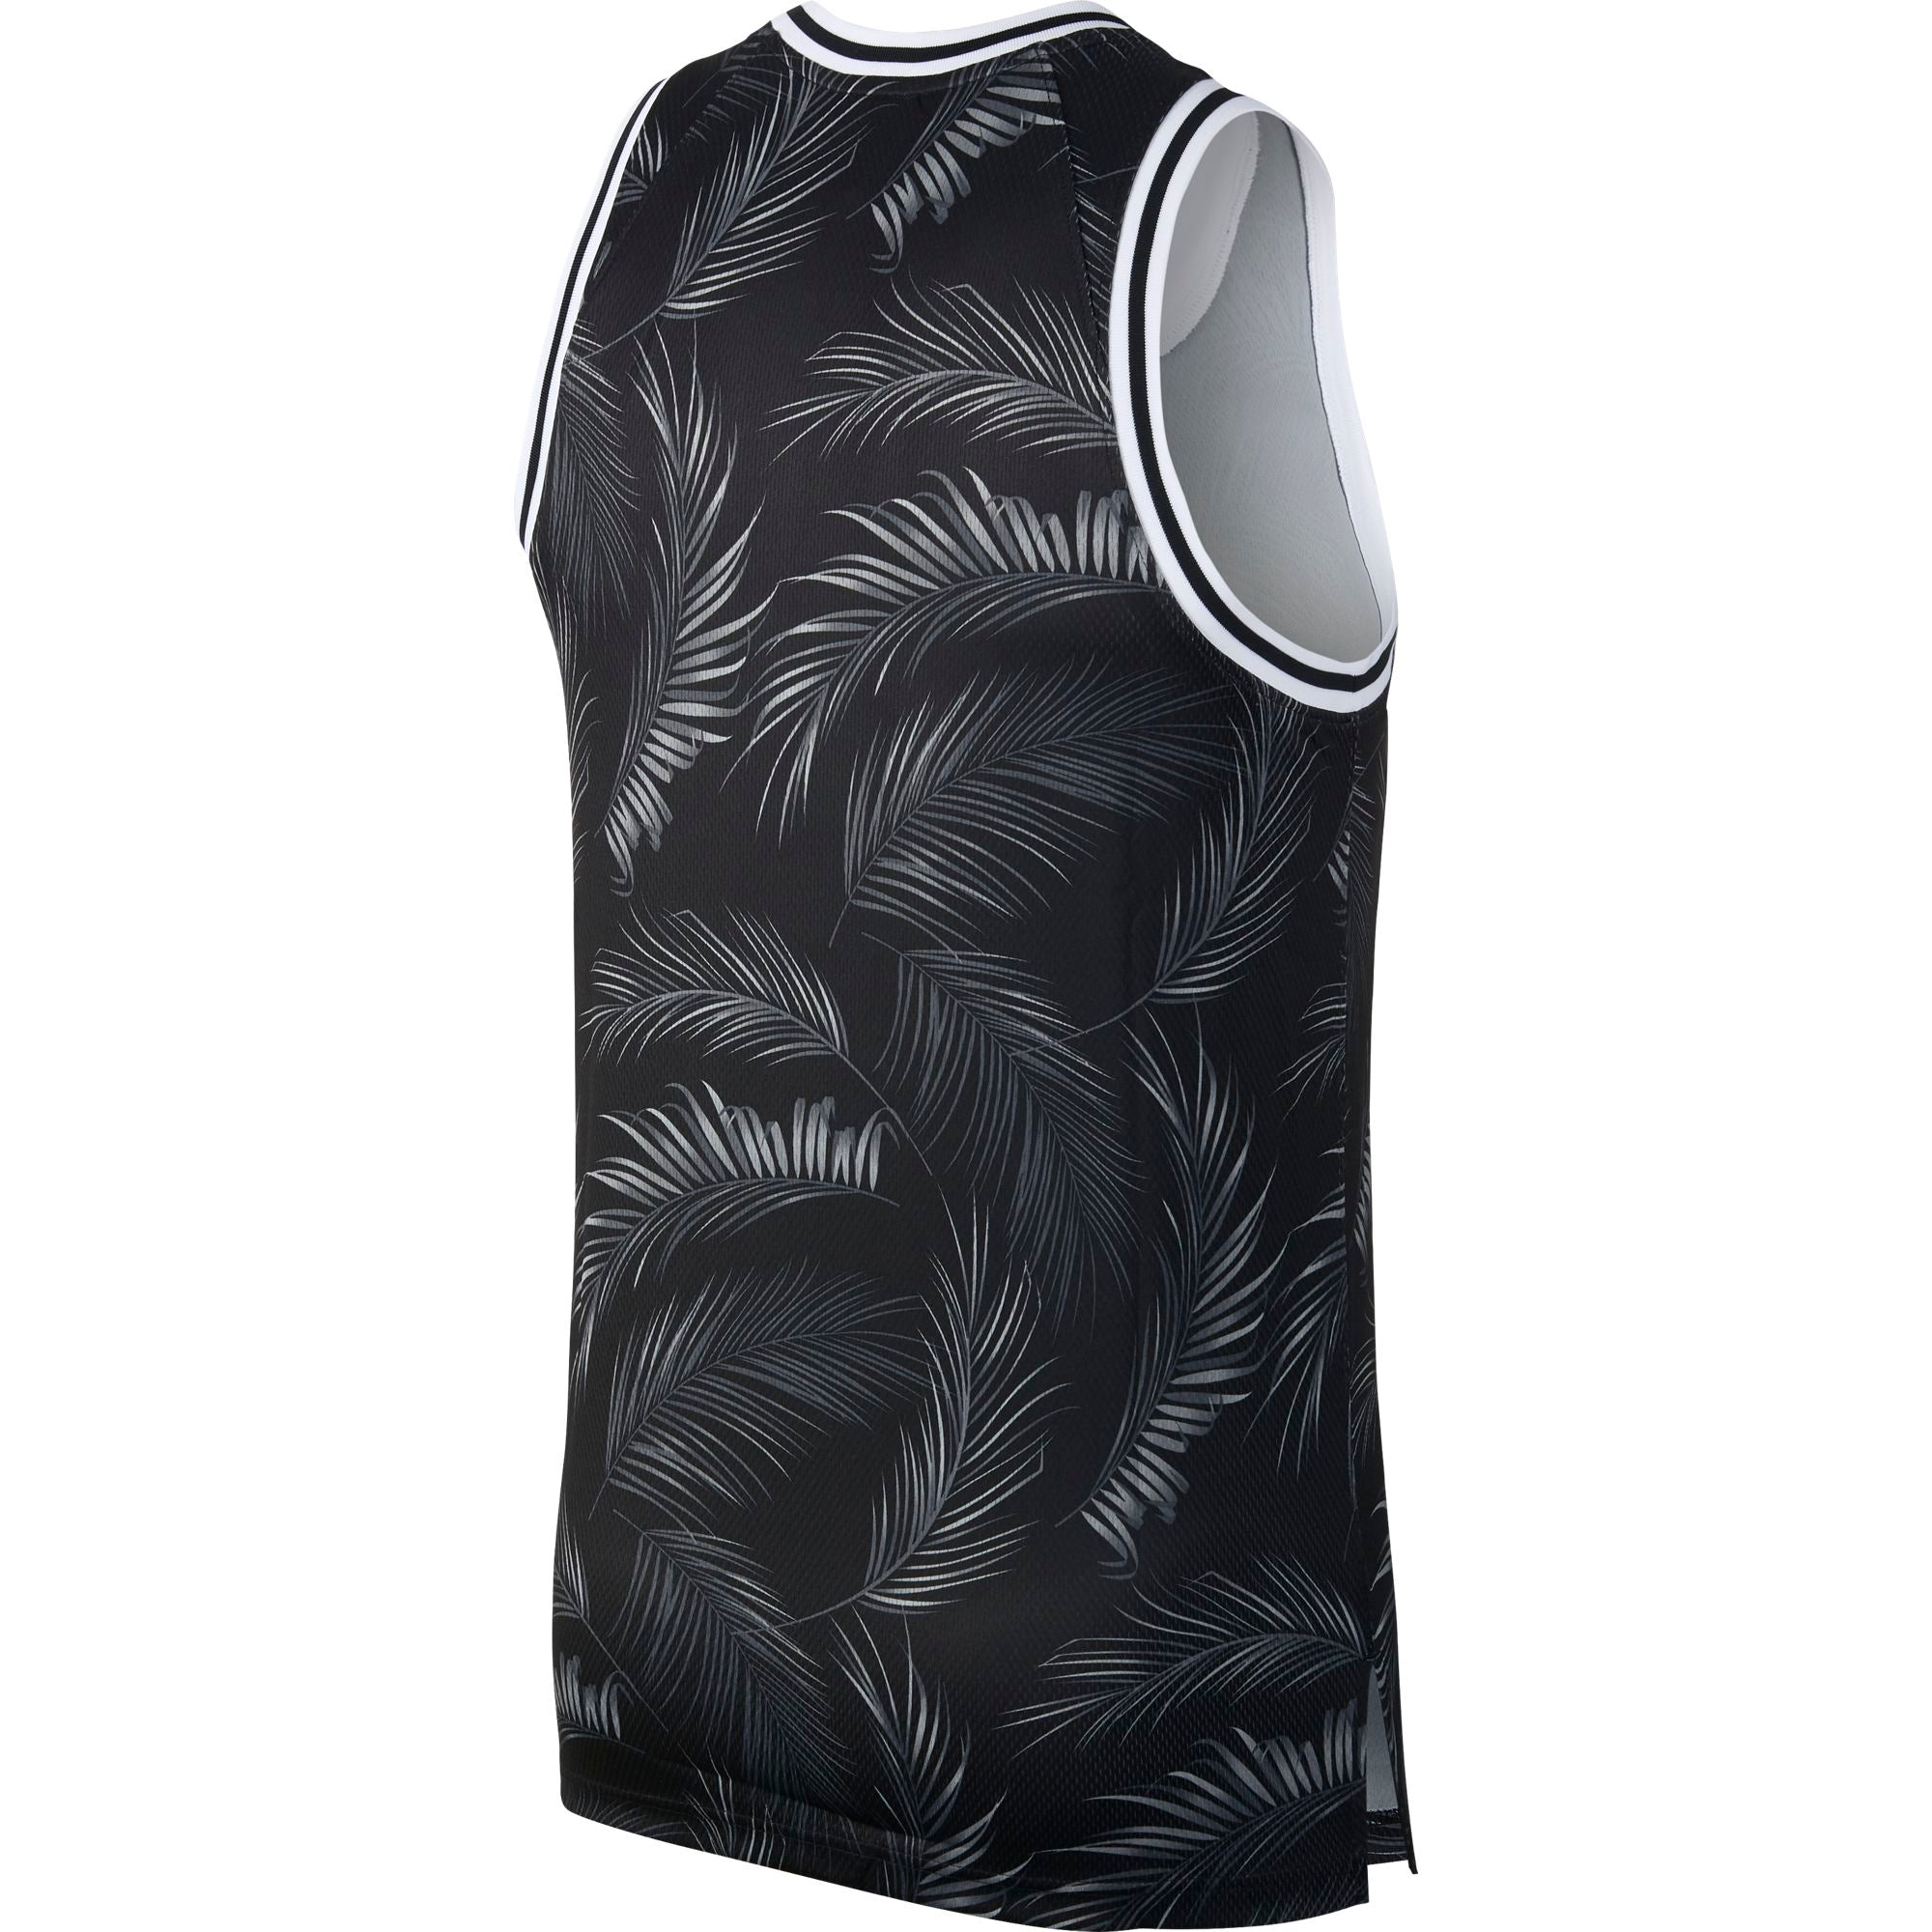 Nike Basketball Dri-fit DNA Jersey - Black/White